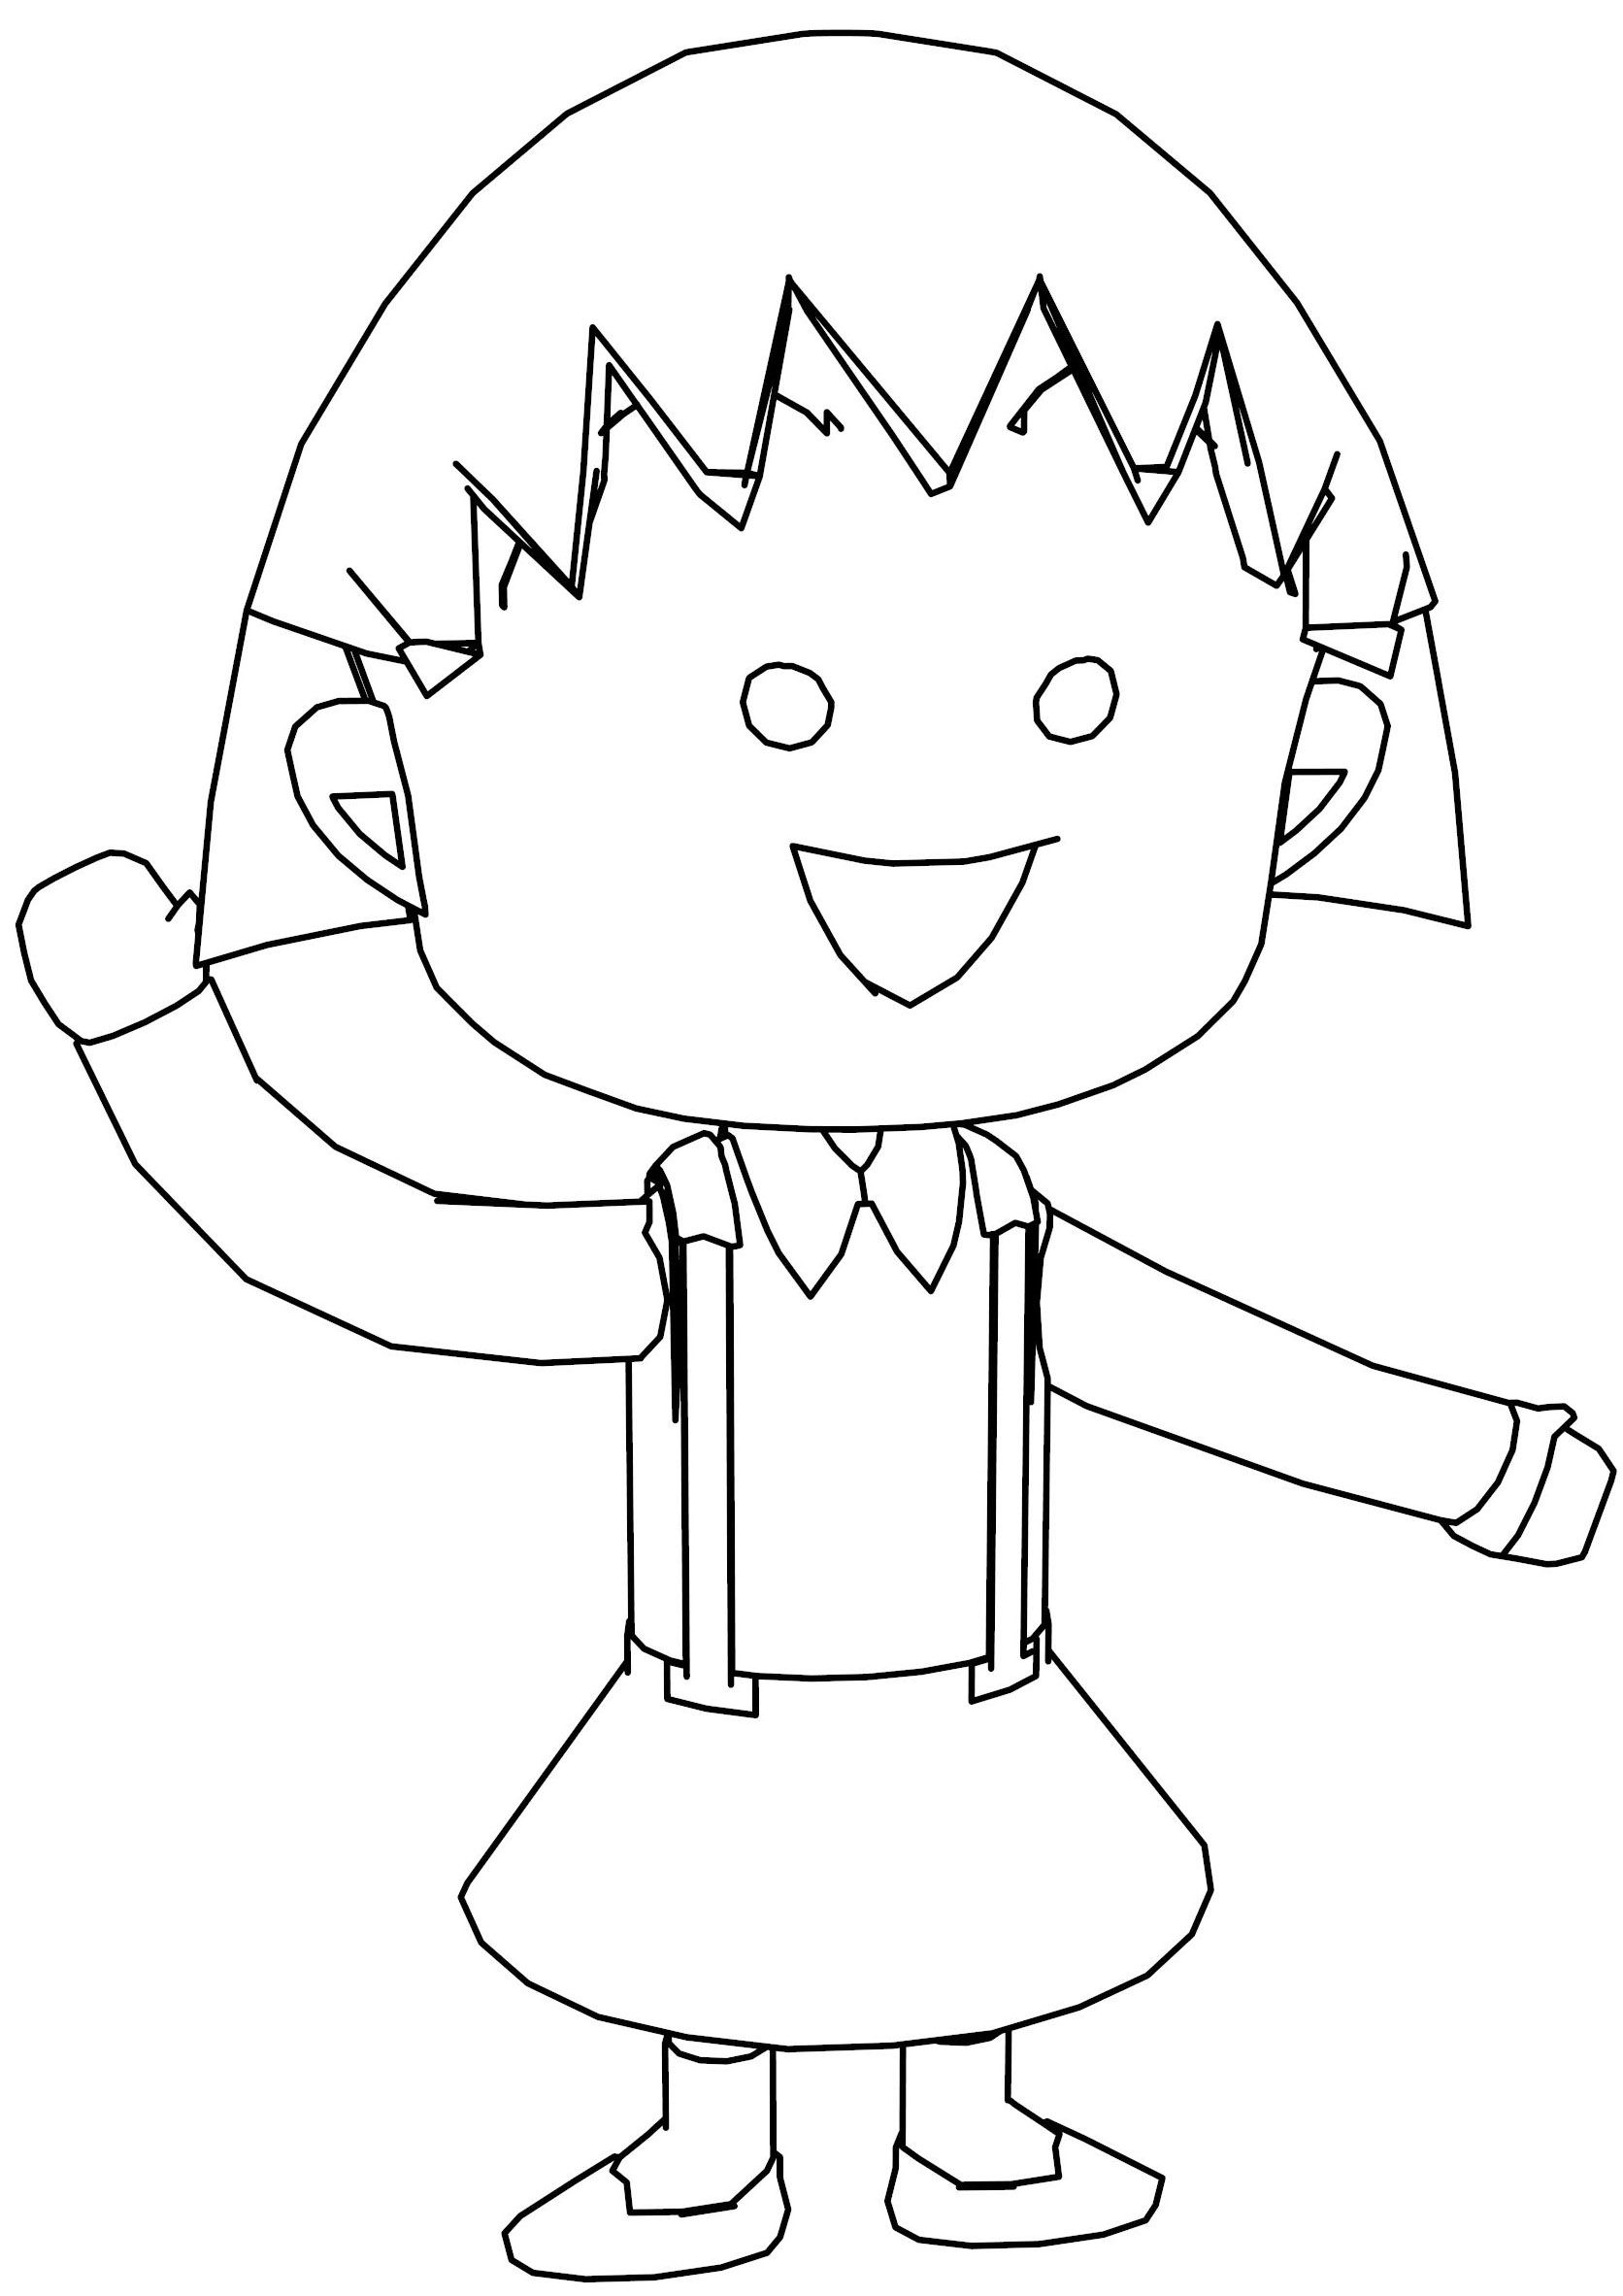 Nice Chibi Maruko Chan Coloring Page Nativity Coloring Pages Angel Coloring Pages Jesus Coloring Pages [ 2365 x 1672 Pixel ]